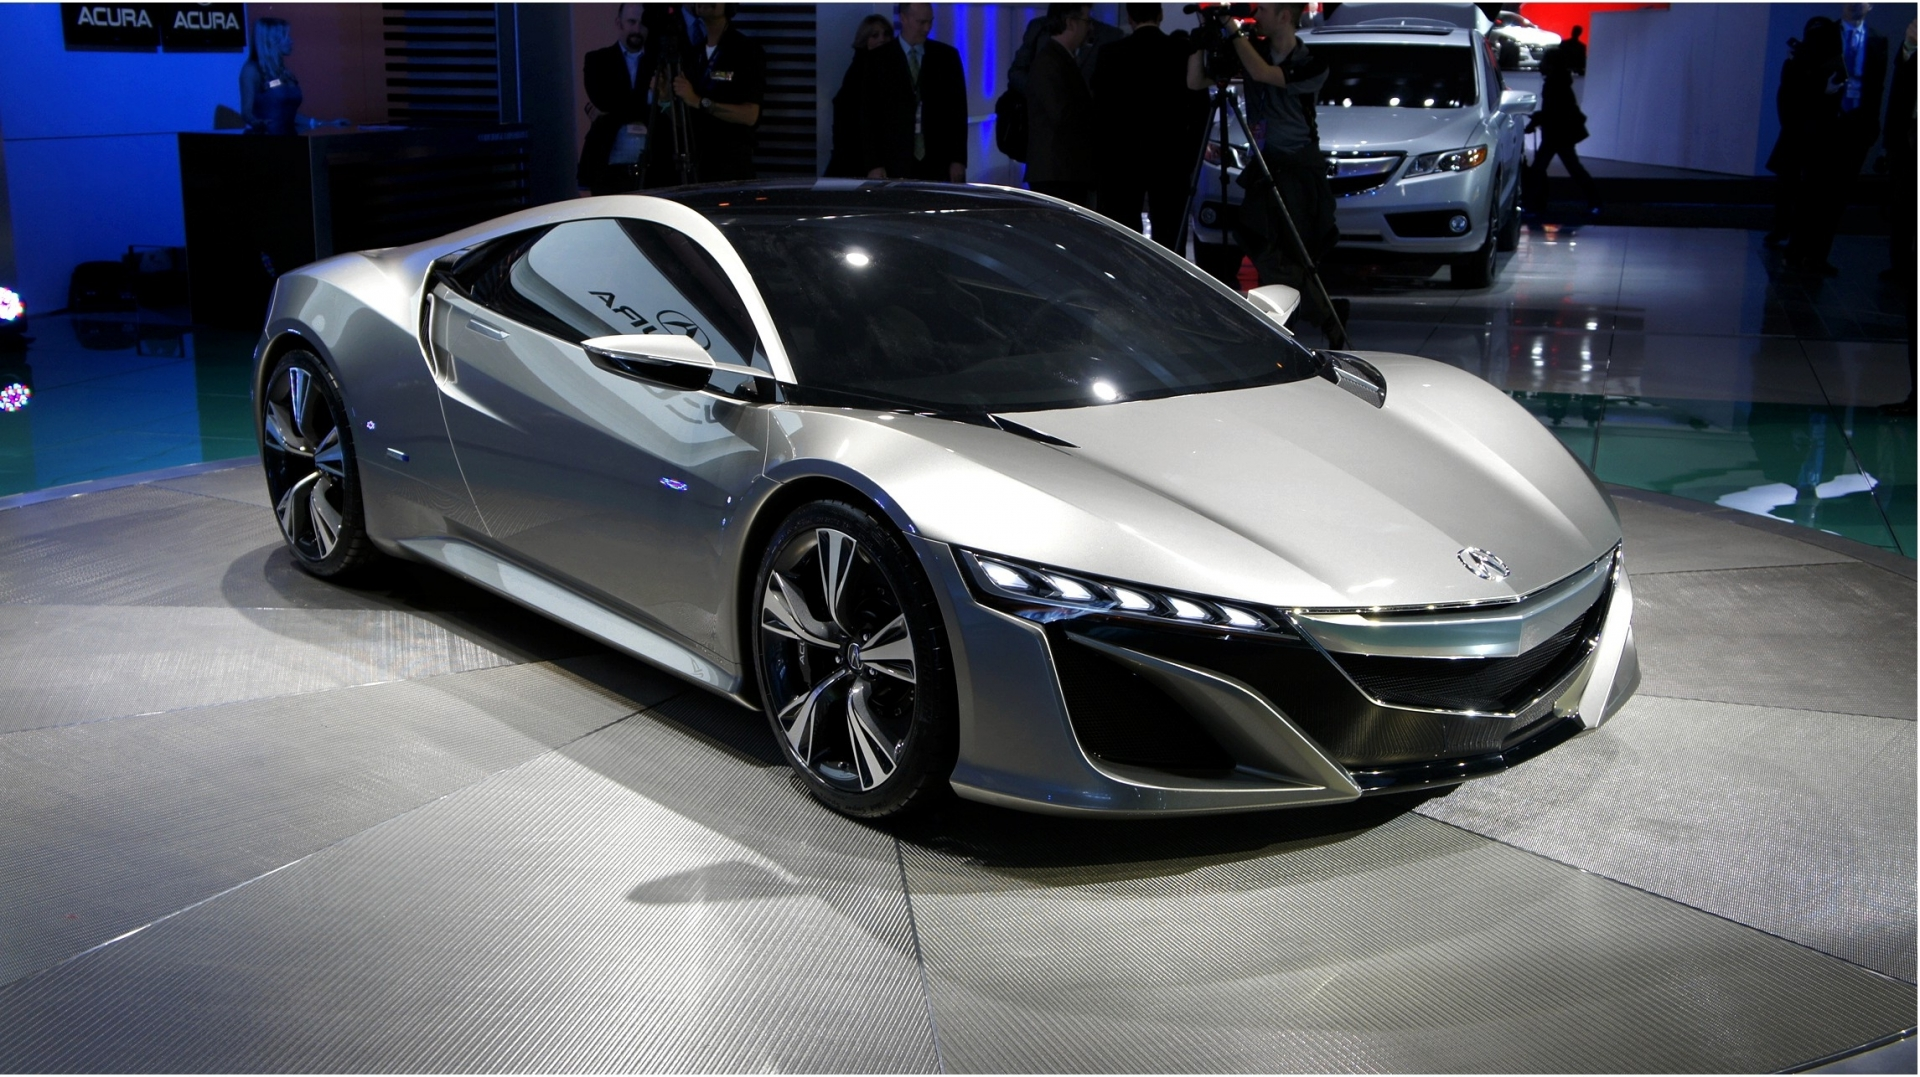 acura-electric-cars108